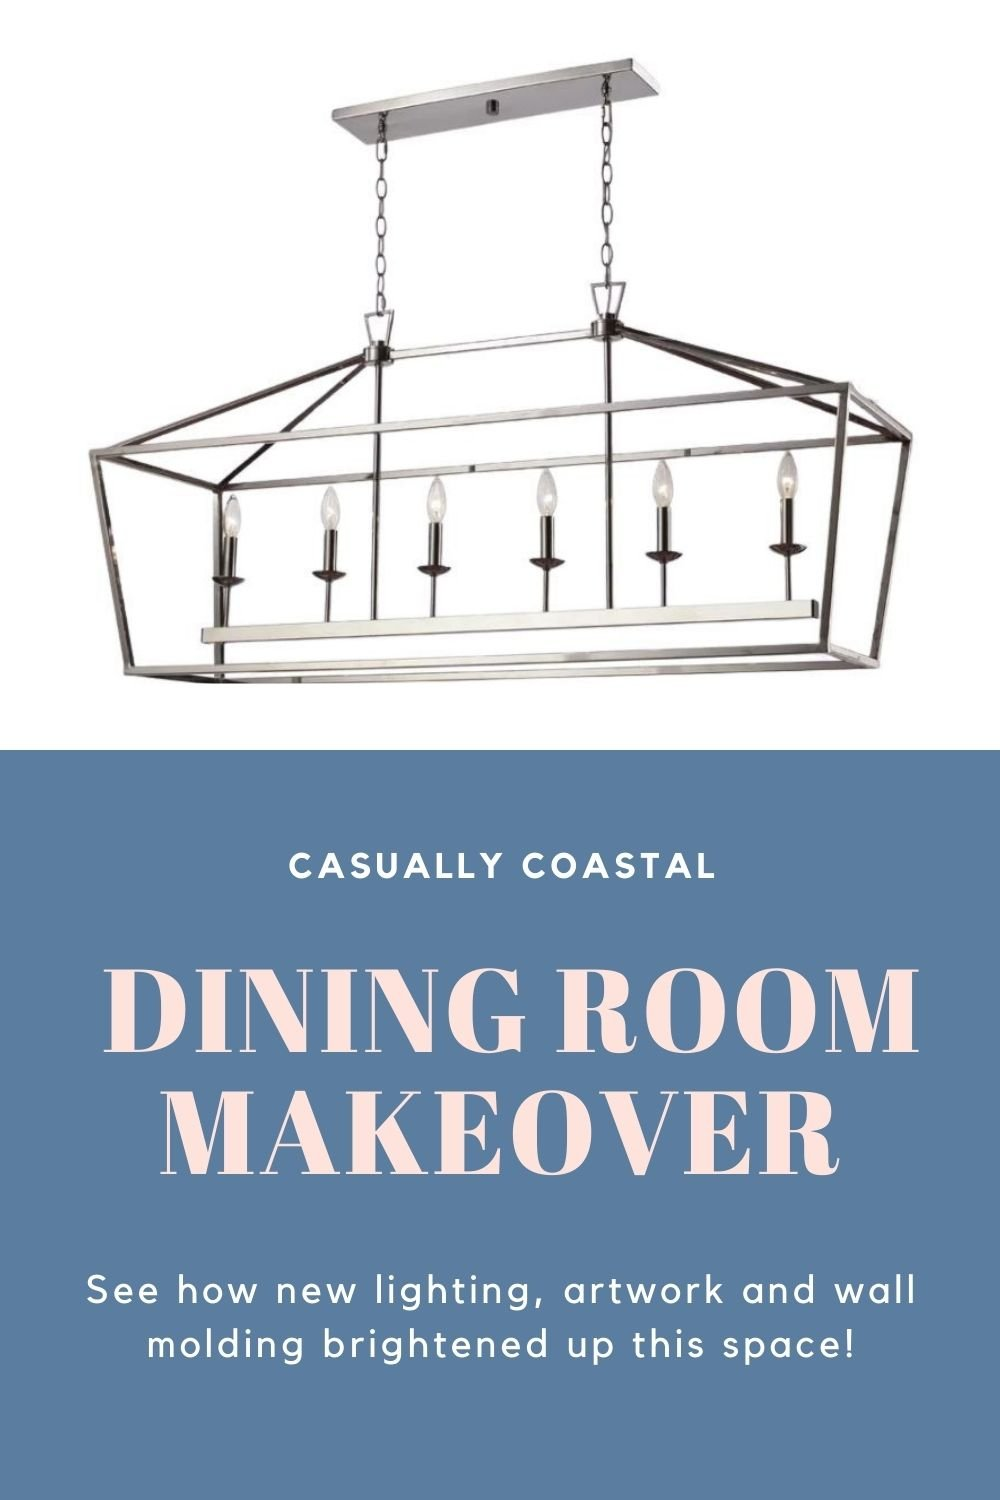 Our Coastal Dining Room Updates Are Complete!